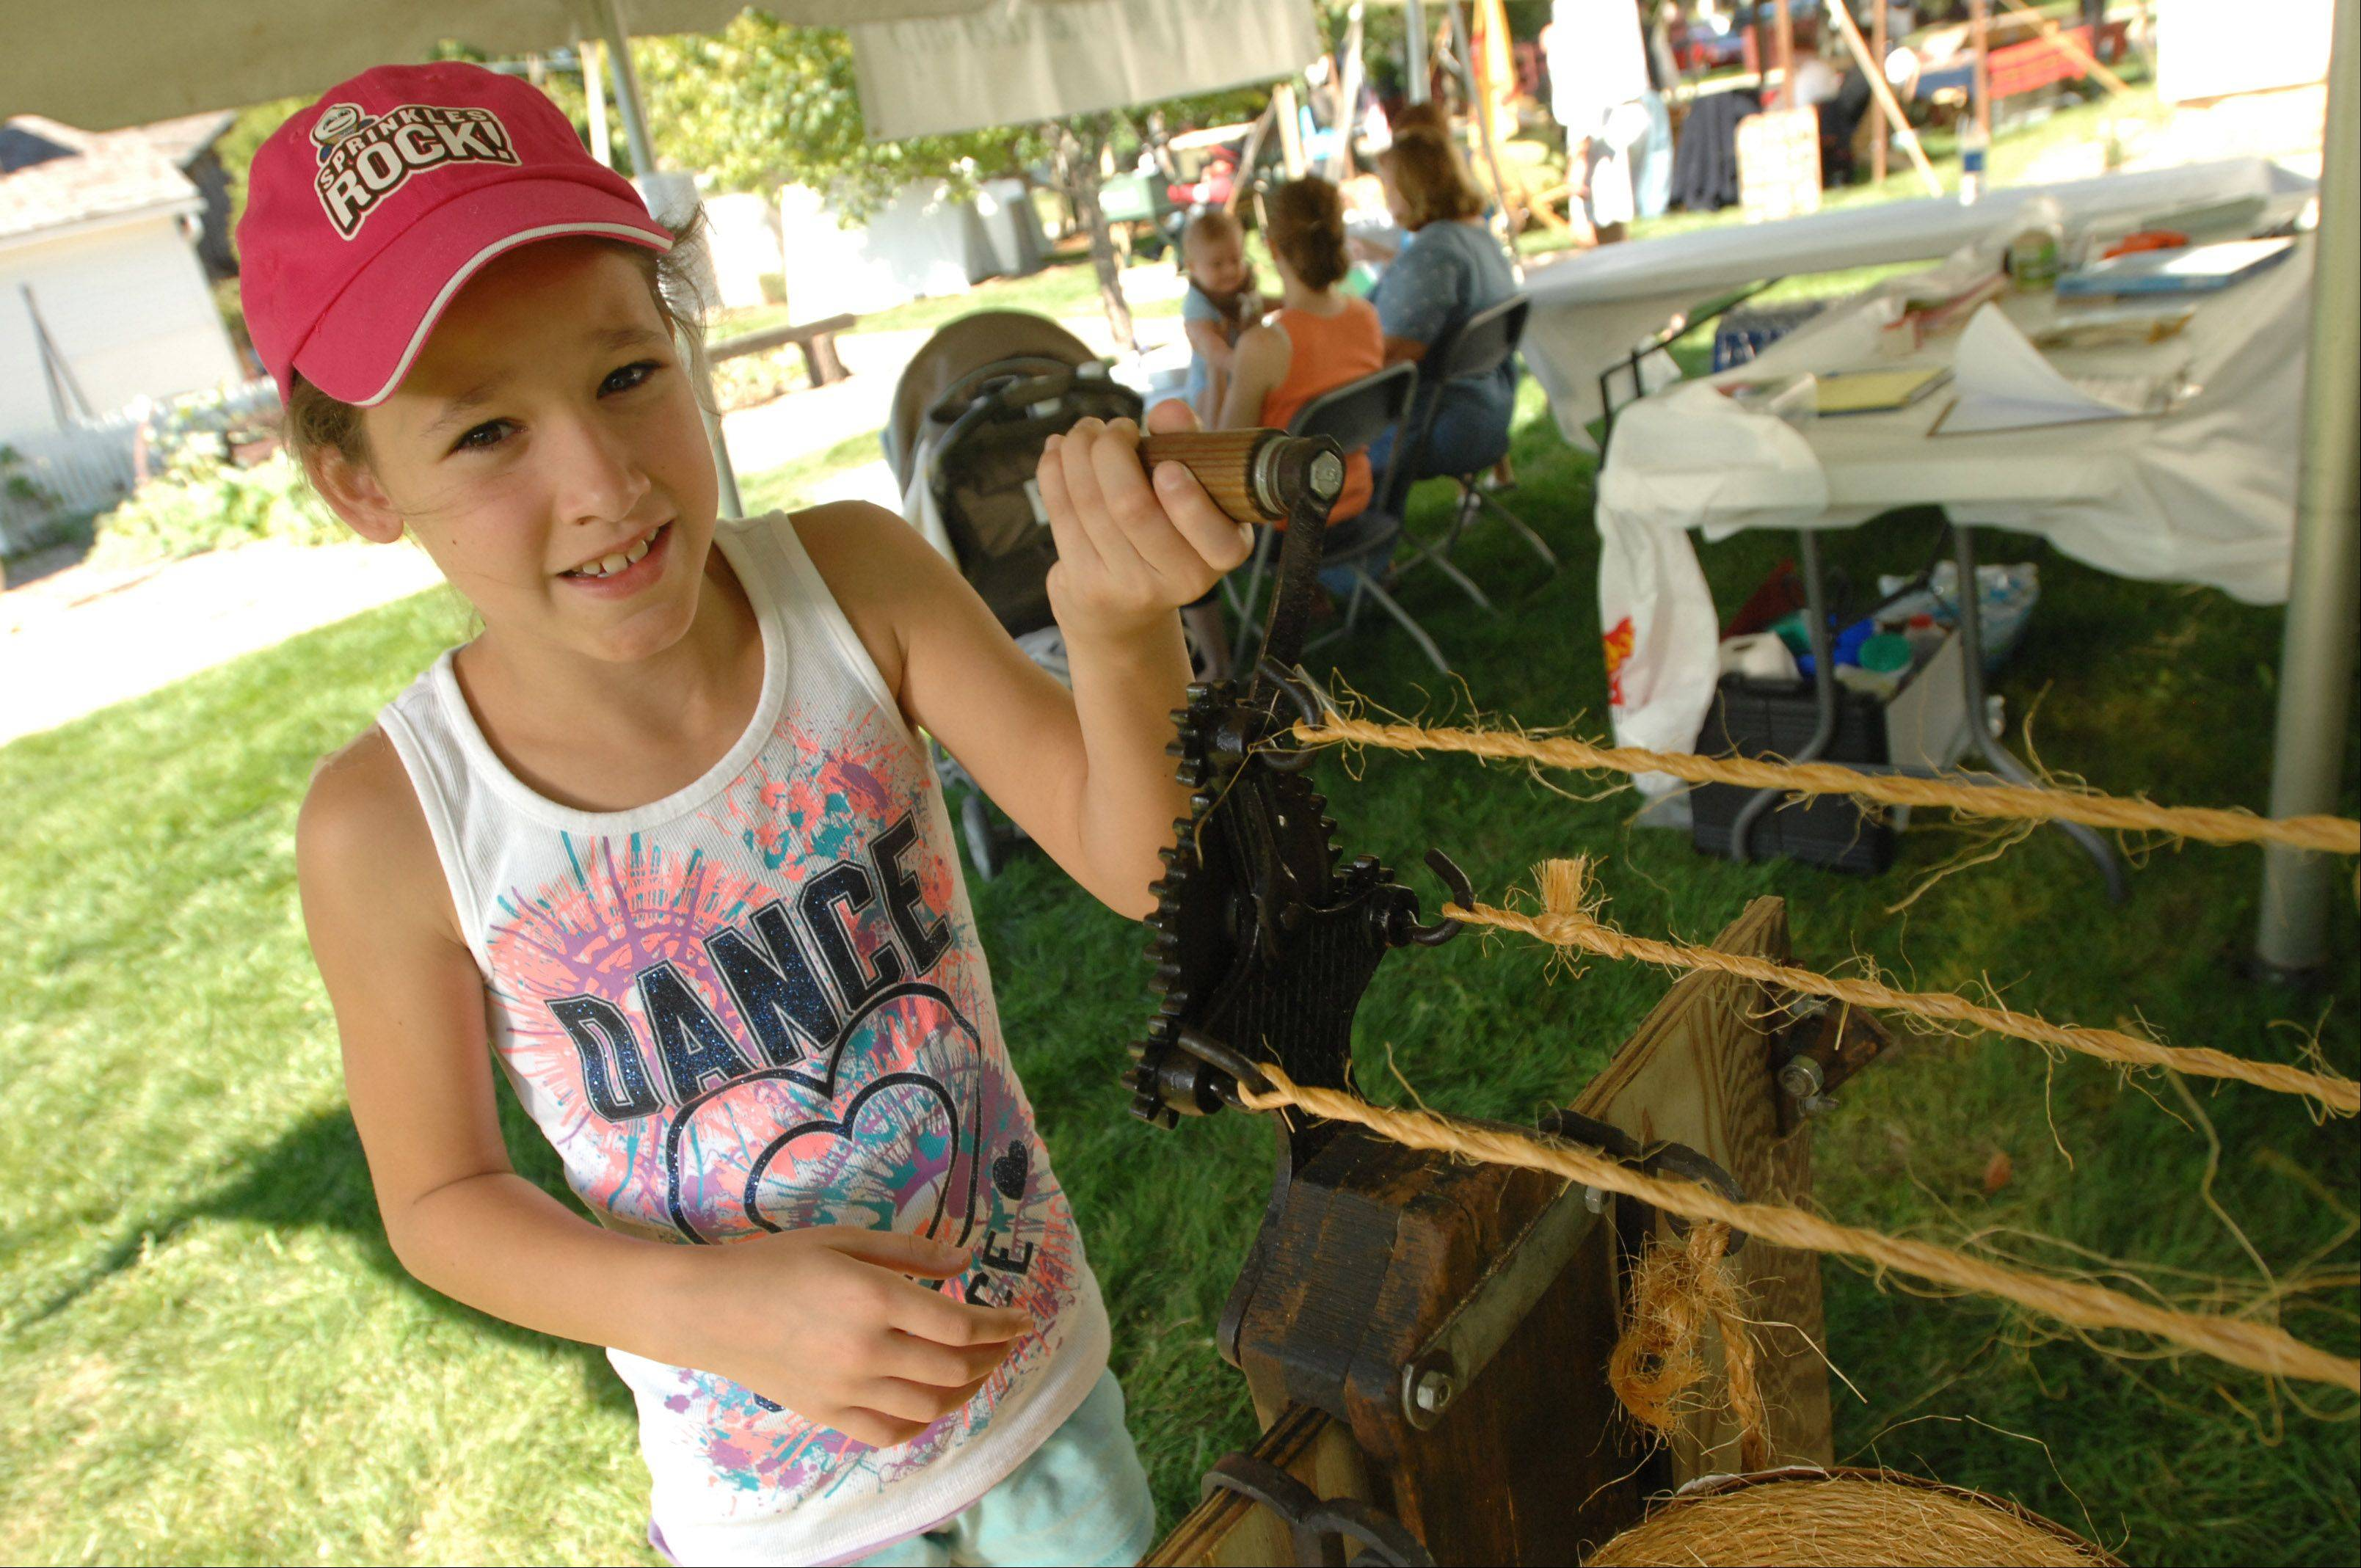 Teagan Pahl of Lisle makes rope Saturday during Depot Days in Lisle. Visitors also could grind corn into cornmeal and watch a Civil War cannon-firing demonstration at the event, which continues from noon to 5 p.m. Sunday.